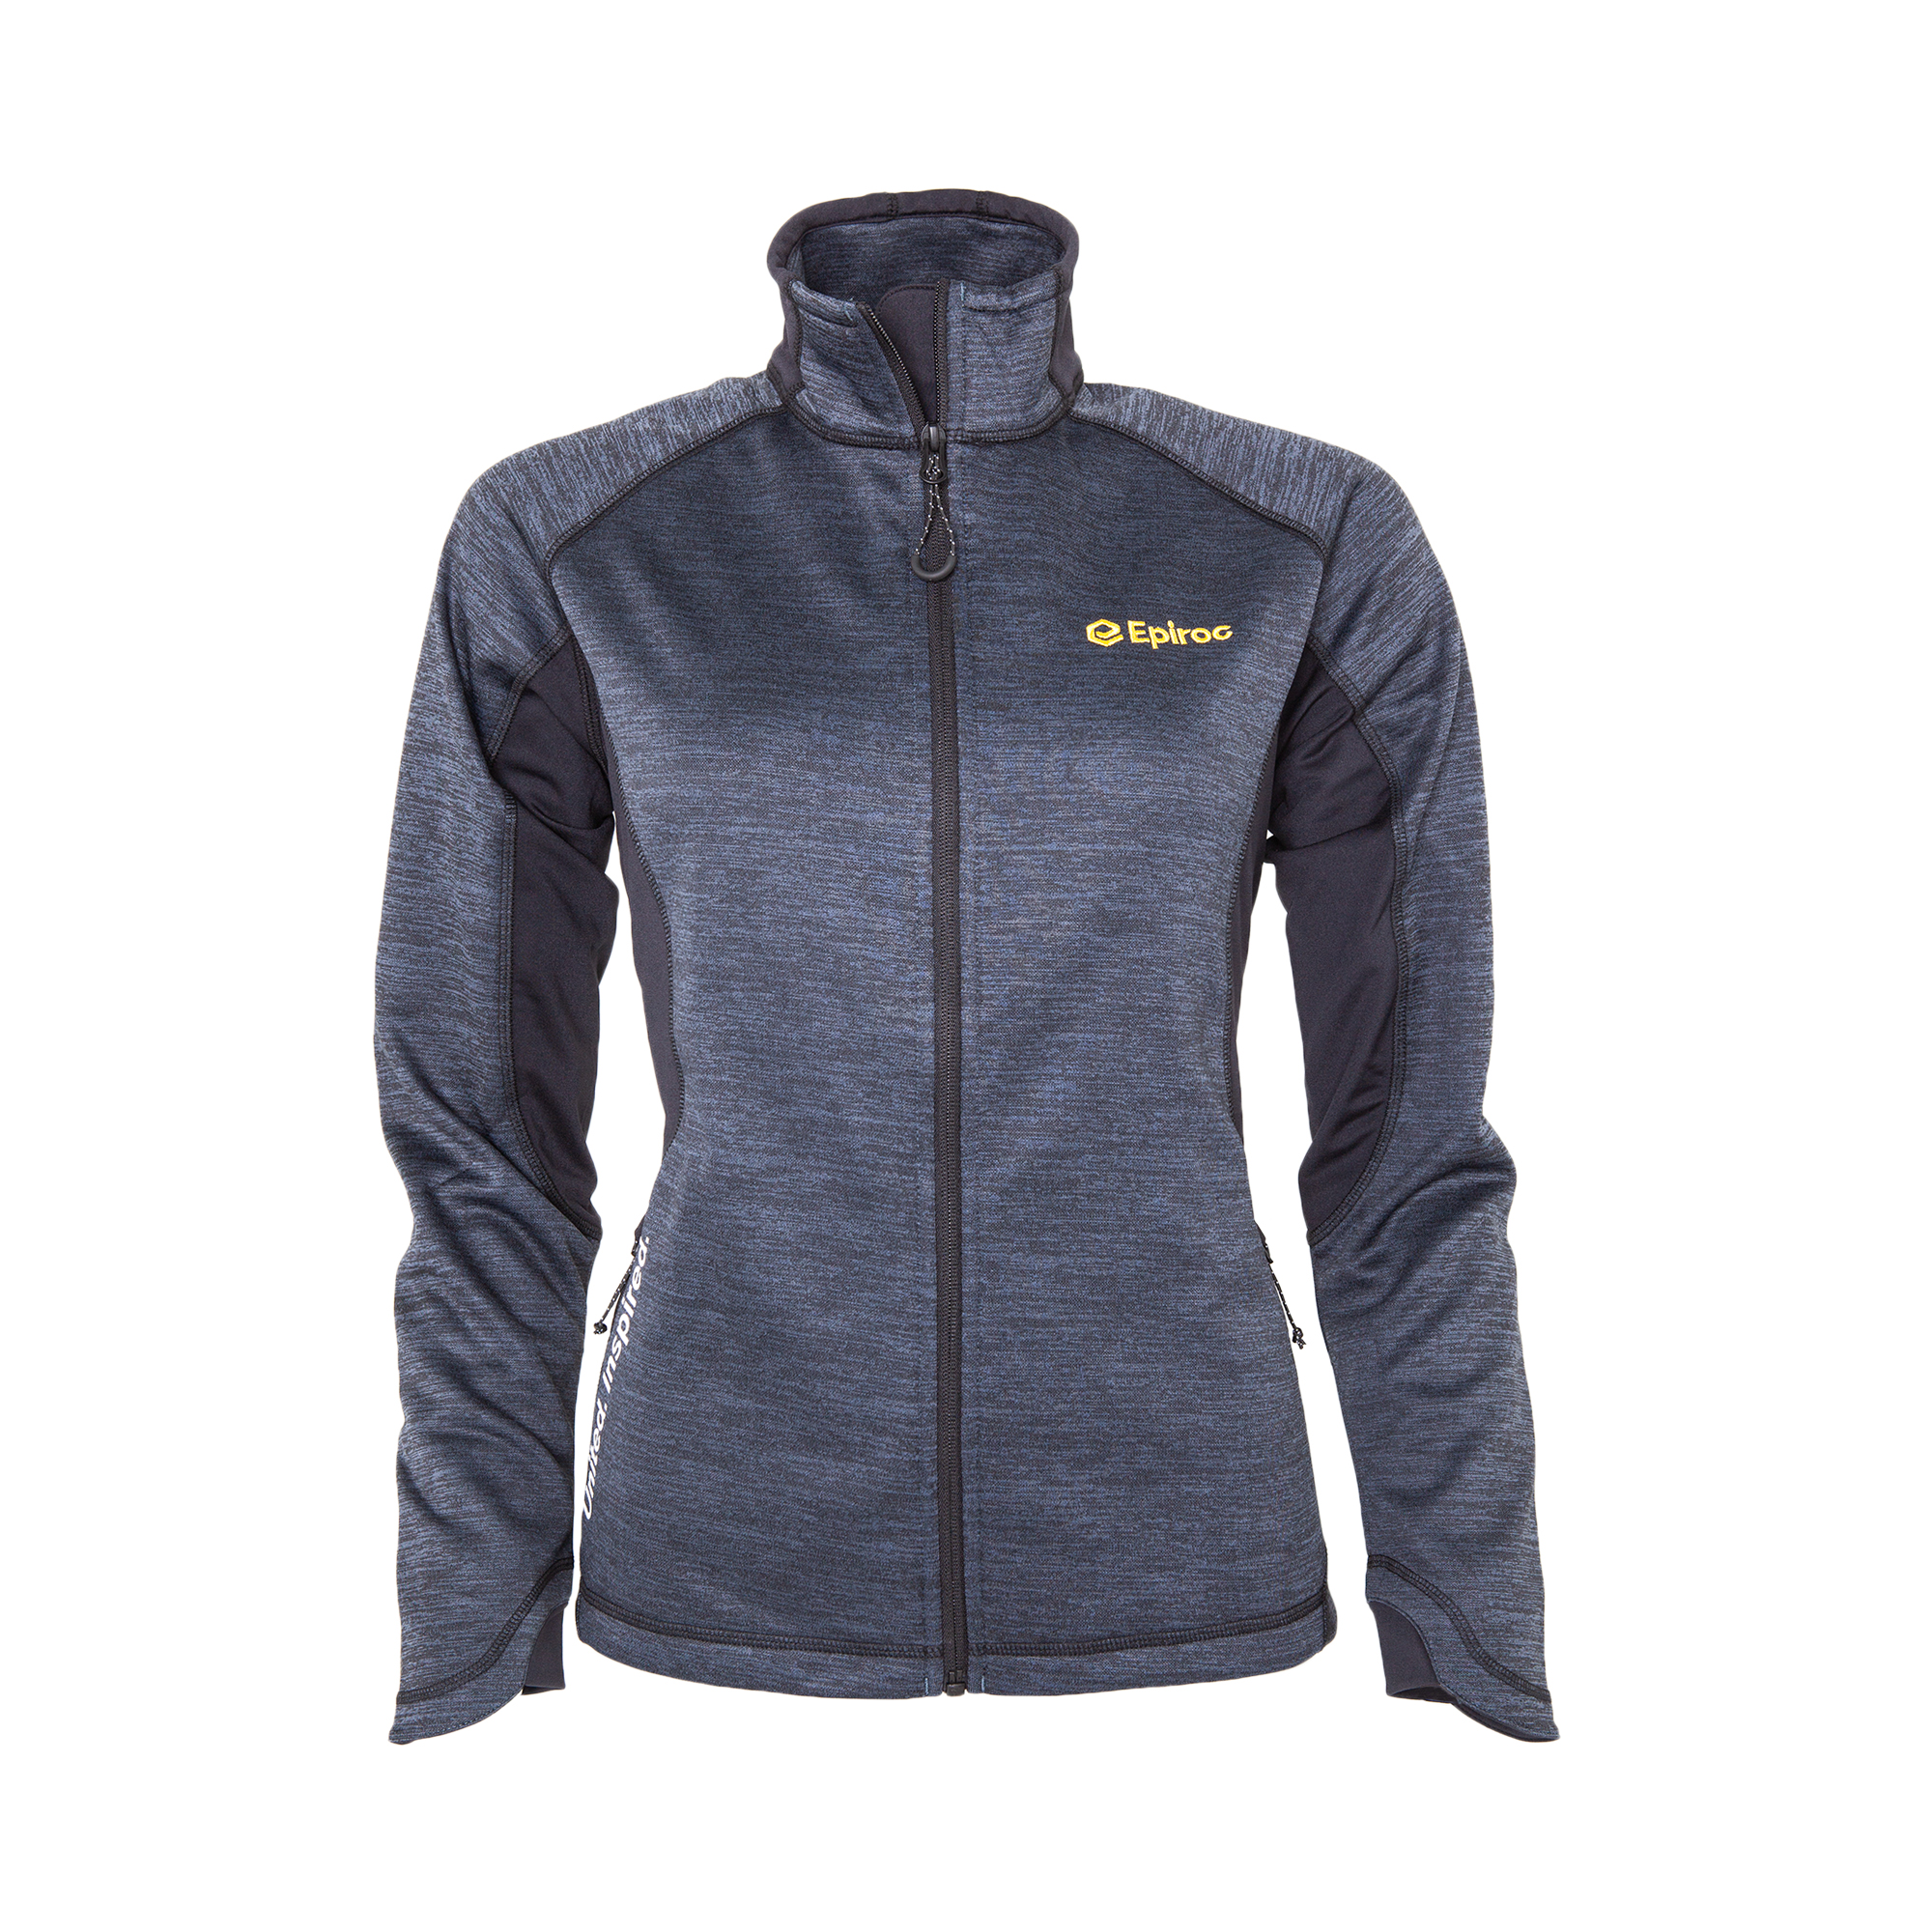 Knit power fleece jacket. Centre front contrast reversed coil zipper. Front pocket with zipper. Flatlock stitching details in contrast colour. Interior media pocket.